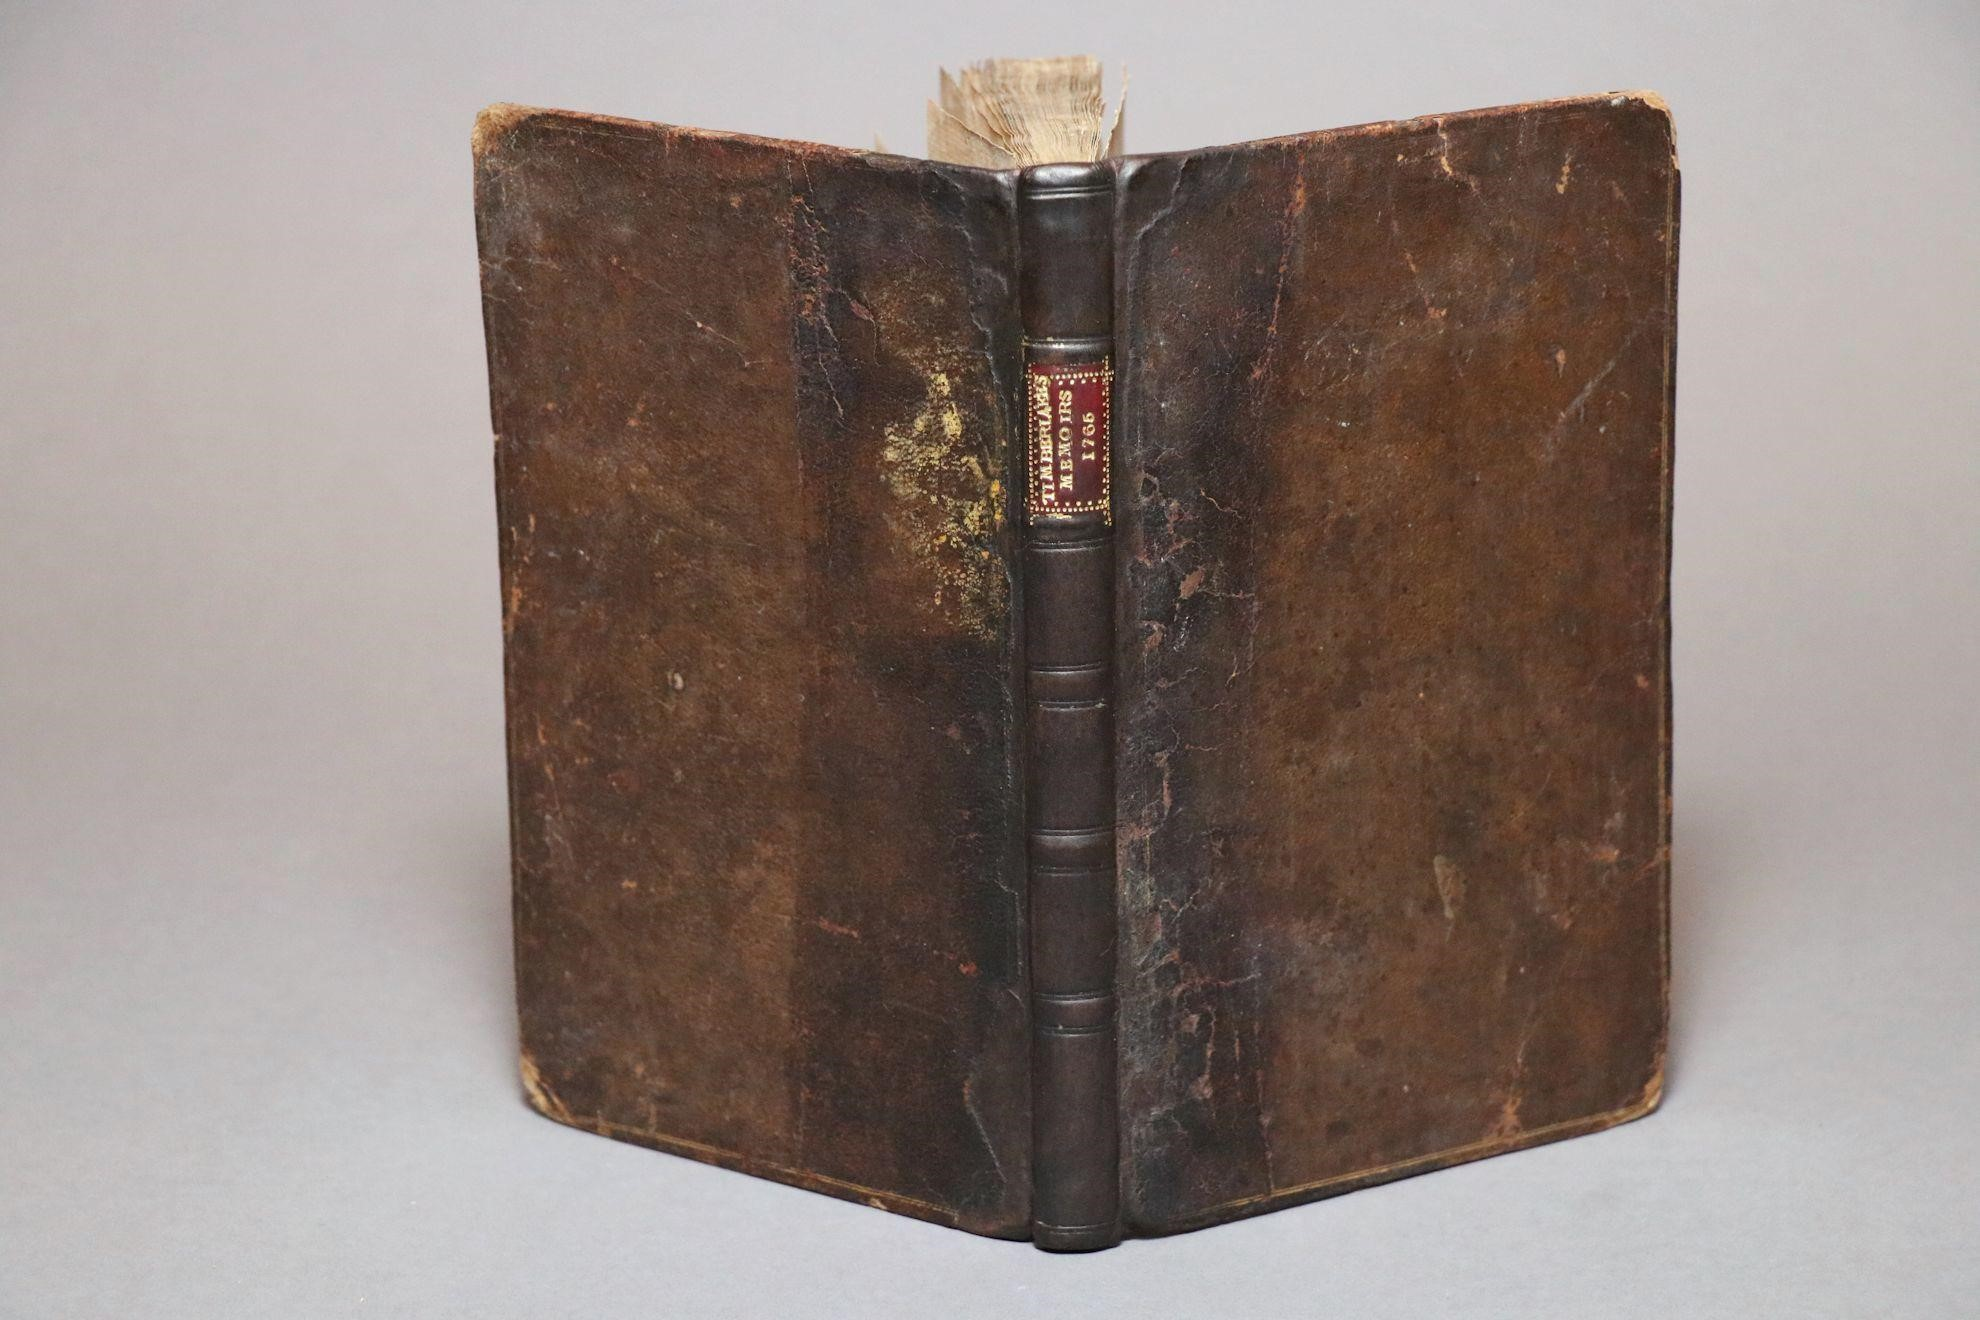 1021: Rare Books & Manuscripts in All Fields